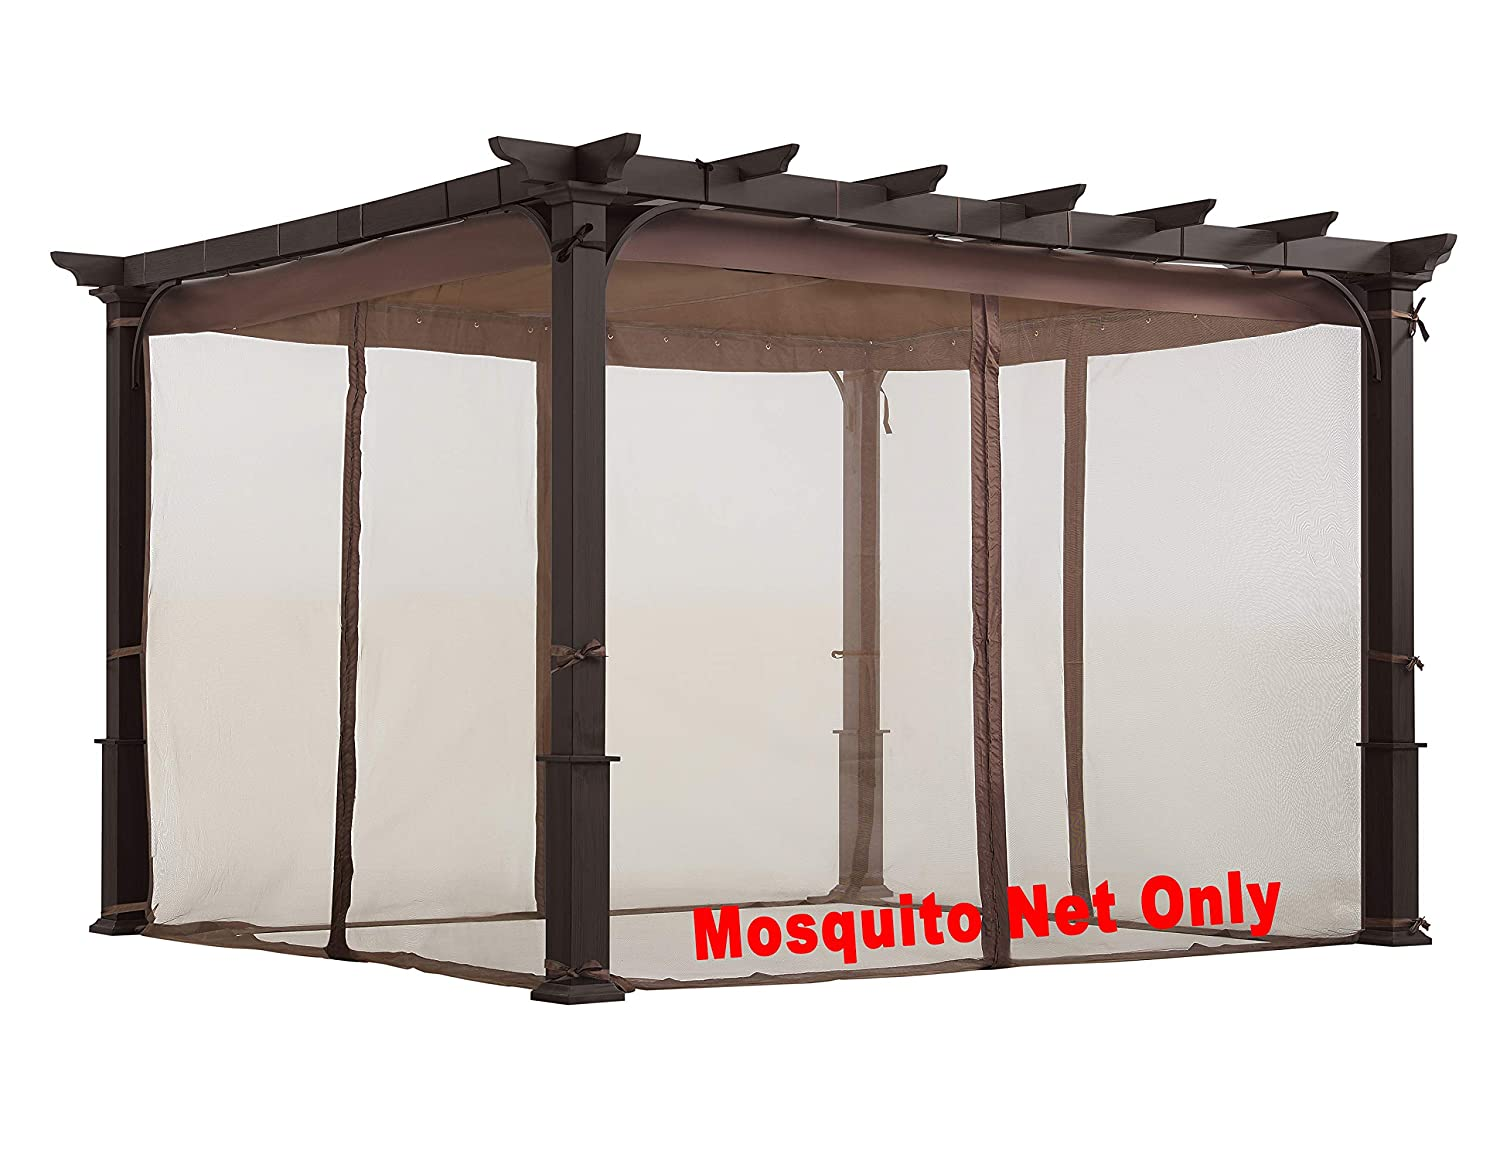 ALISUN Mosquito Net for Flat-Roof Pergola – Mesh Bug Net Only 10 ft. x 10 ft, Brown